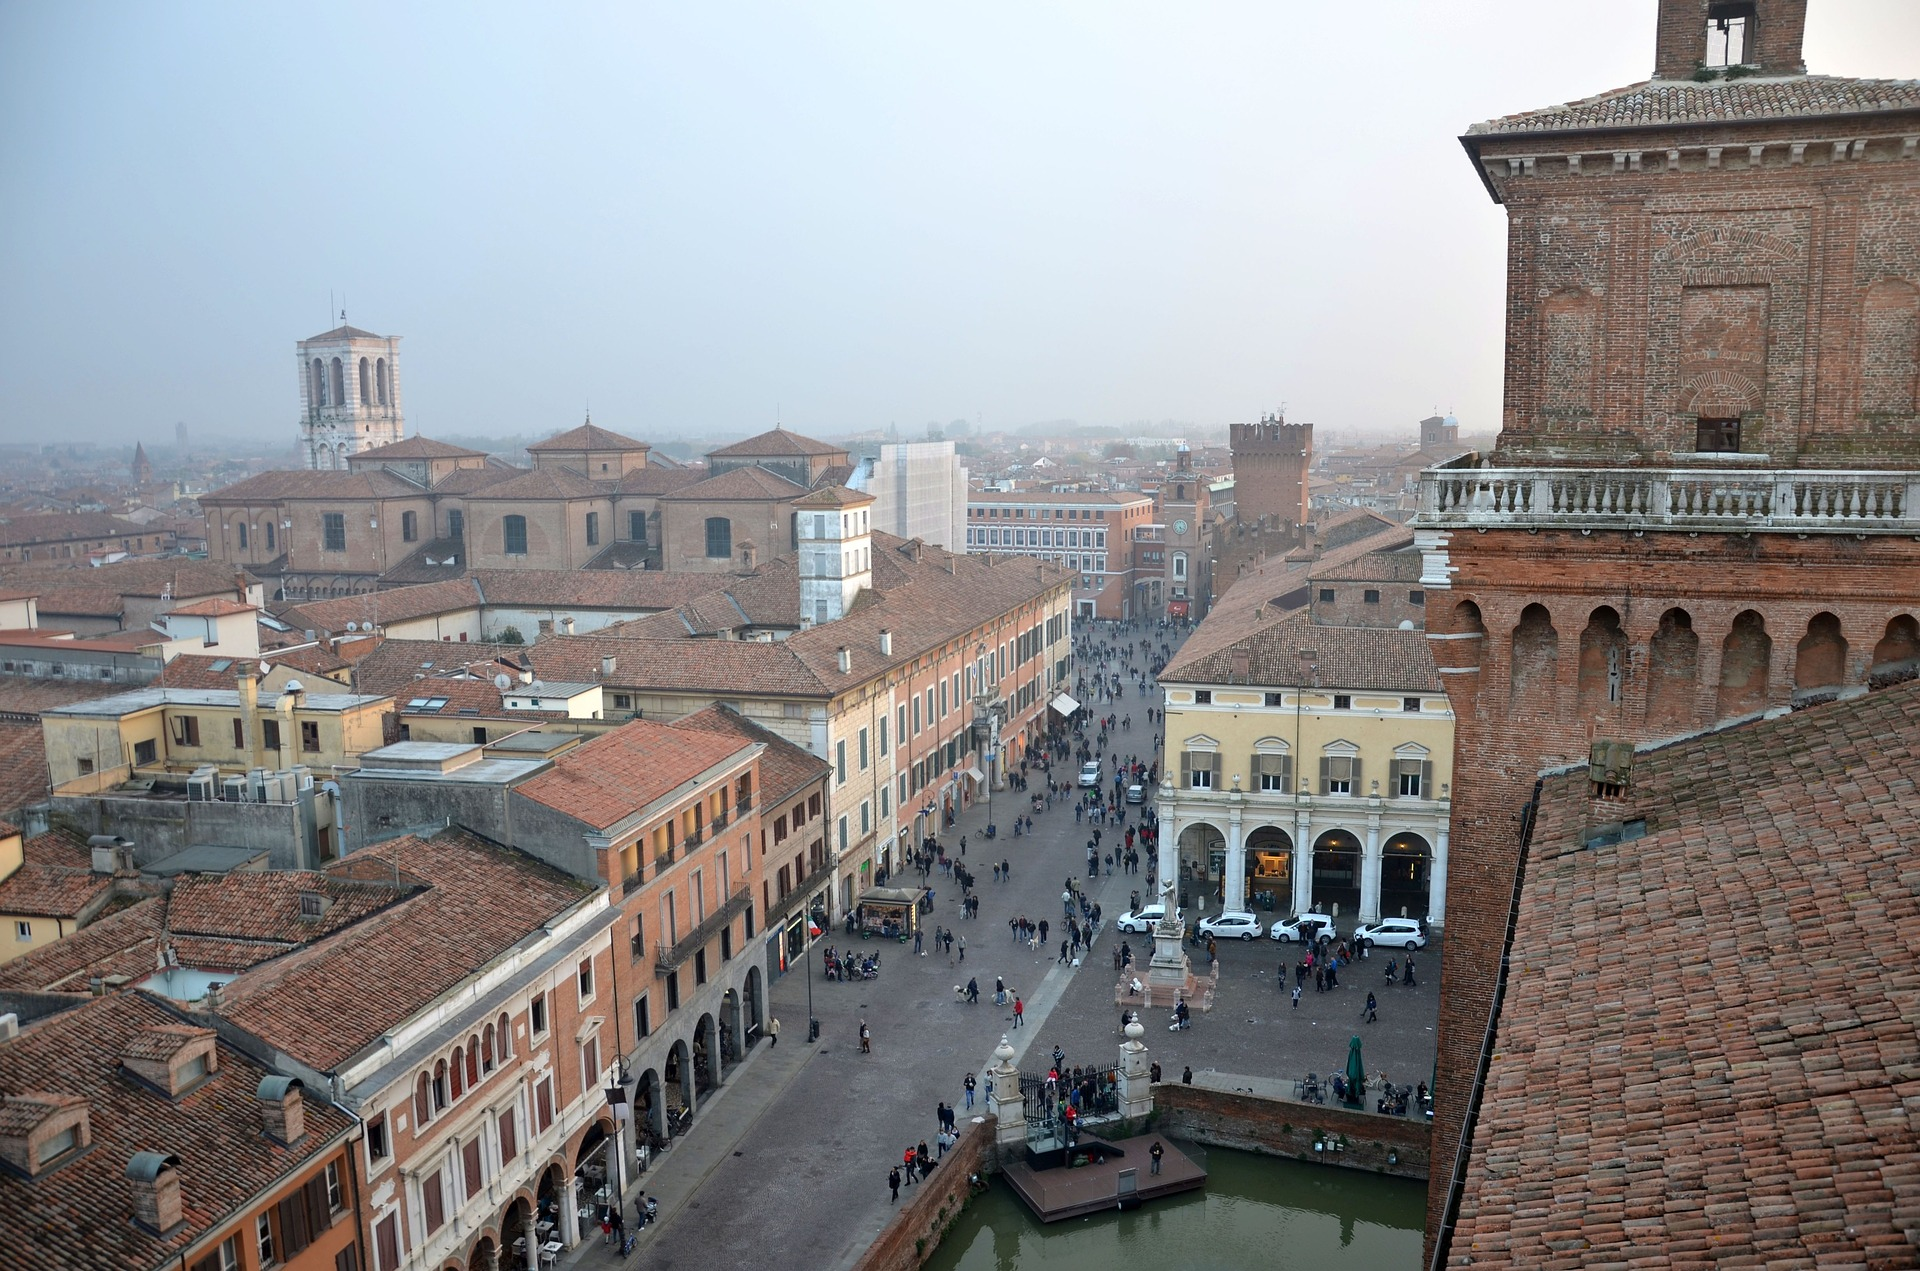 https://www.touripp.it/wp-content/uploads/2020/09/ferrara-2789948_1920.jpg